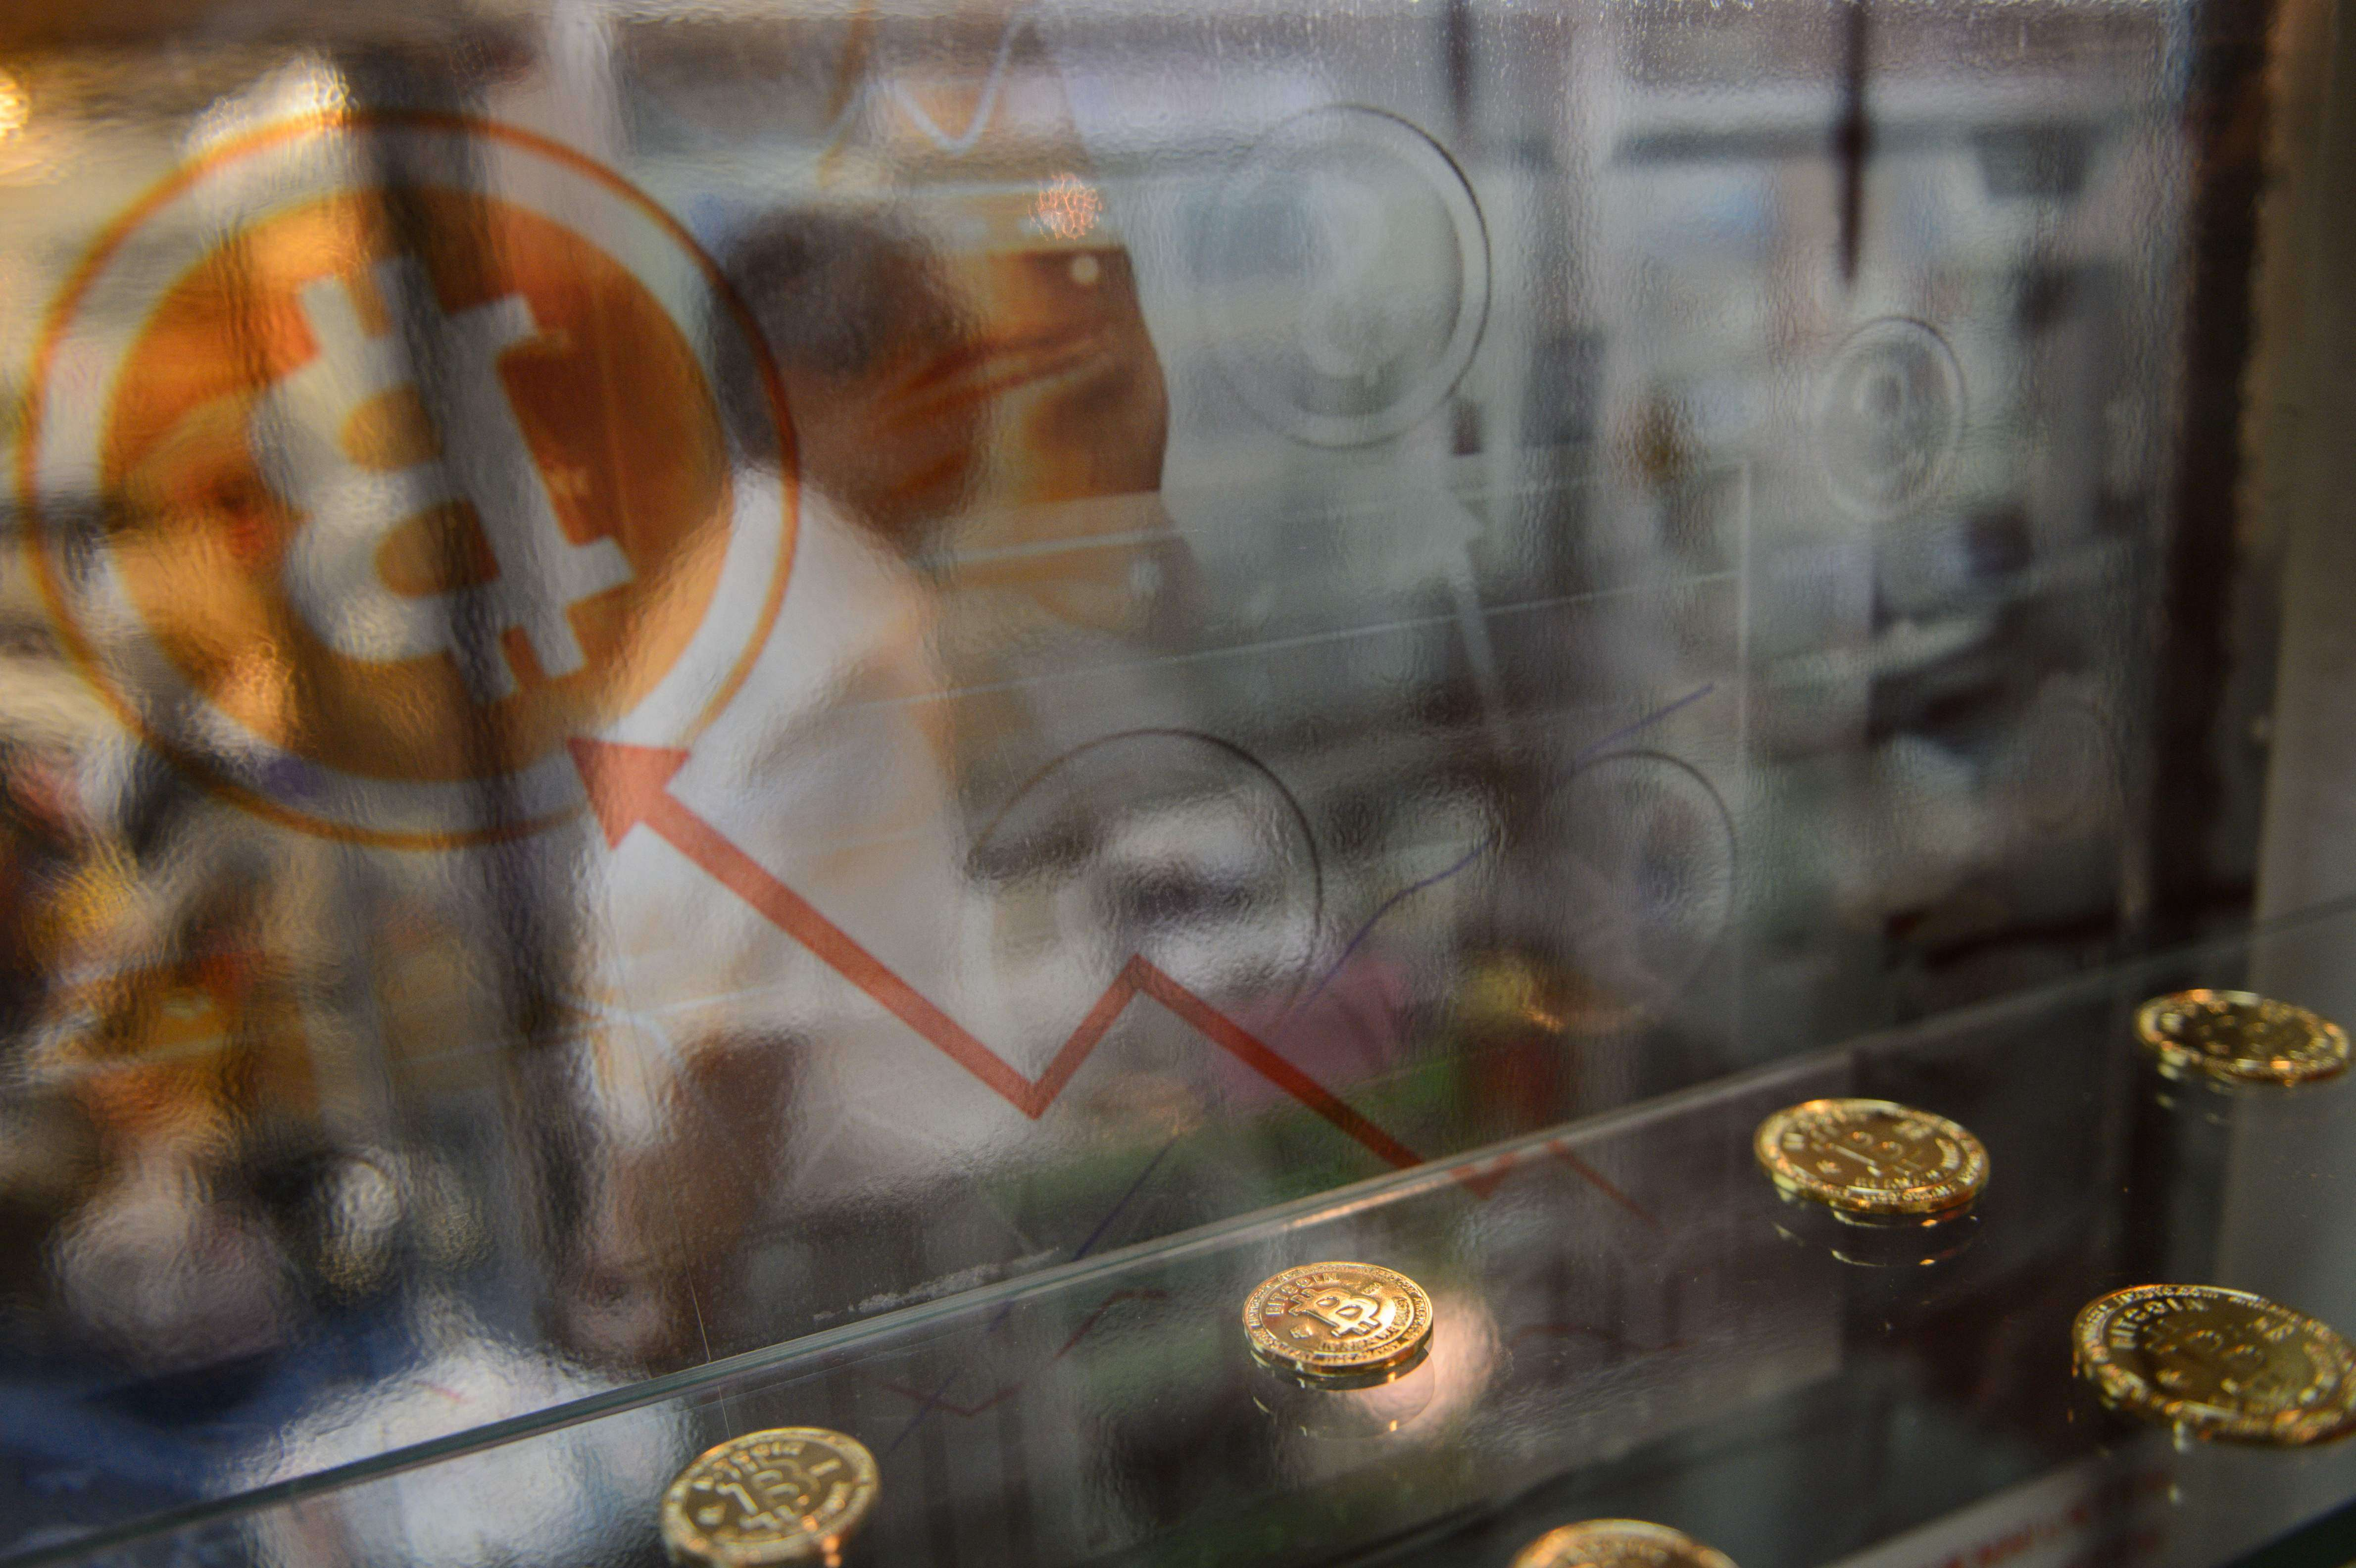 China's central bank is developing its own digital currency